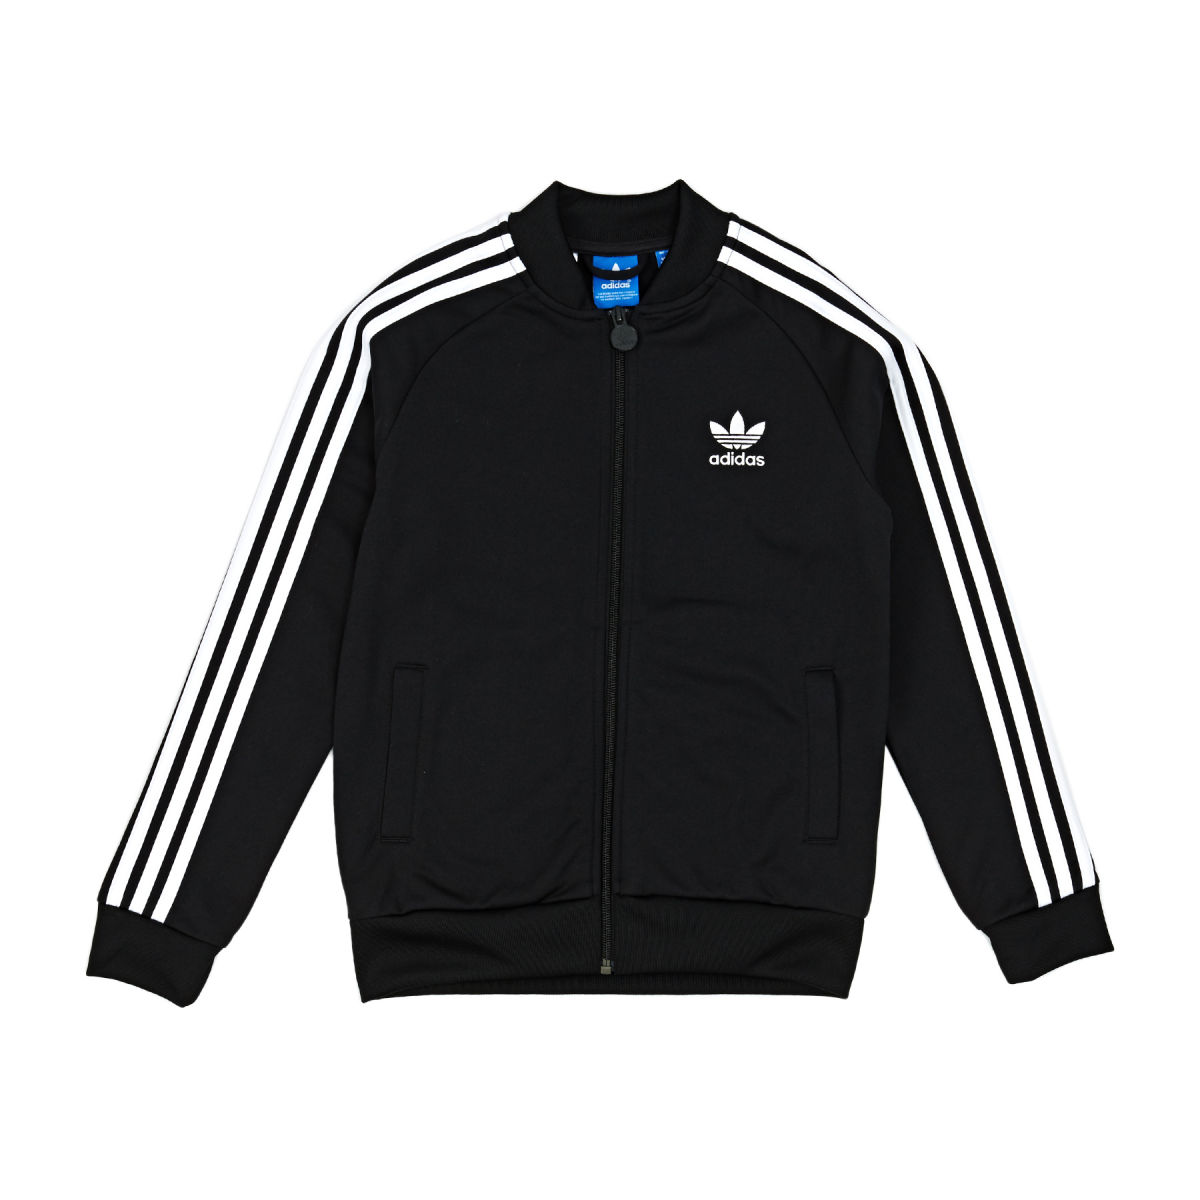 adidas originals jacket adidas originals superstar jacket - black/white VBOIWZJ